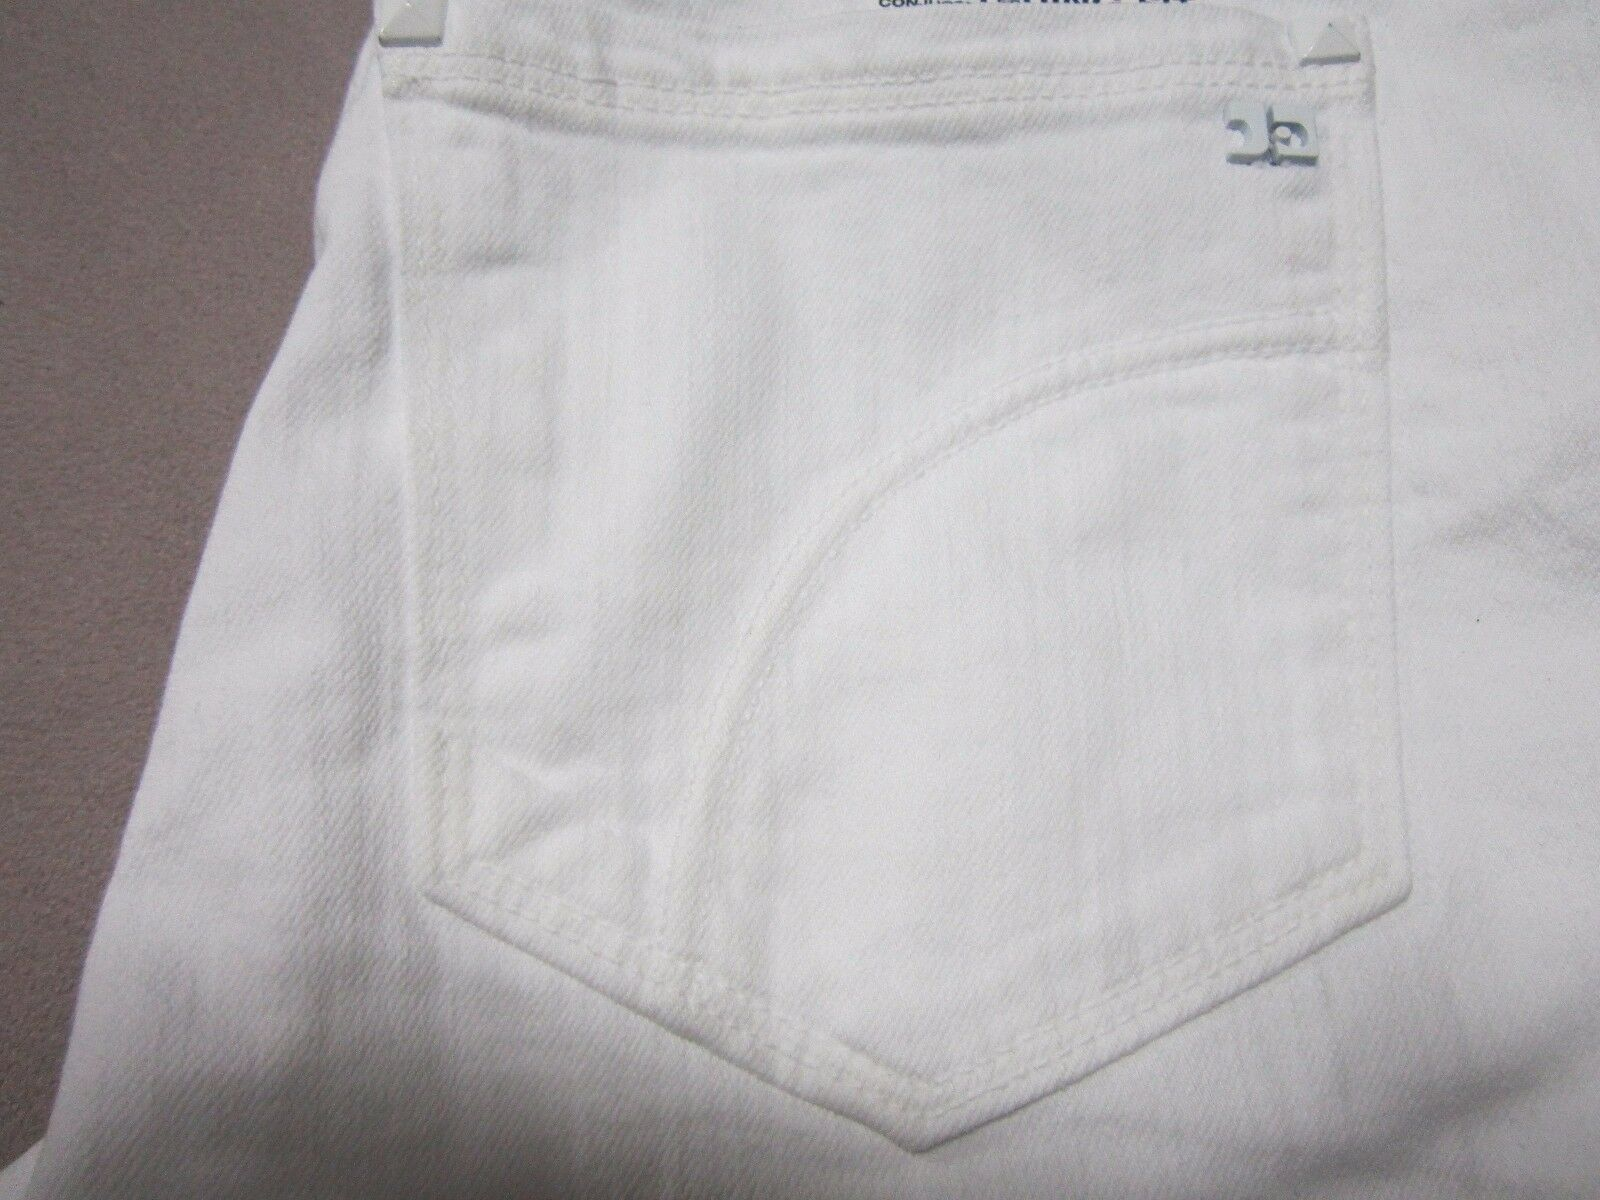 JOES JEANS THE MUSE WOMENS HIGH WAIST BOOTCUT WHITE JENNY WASH JEANS SIZE 26 NEW